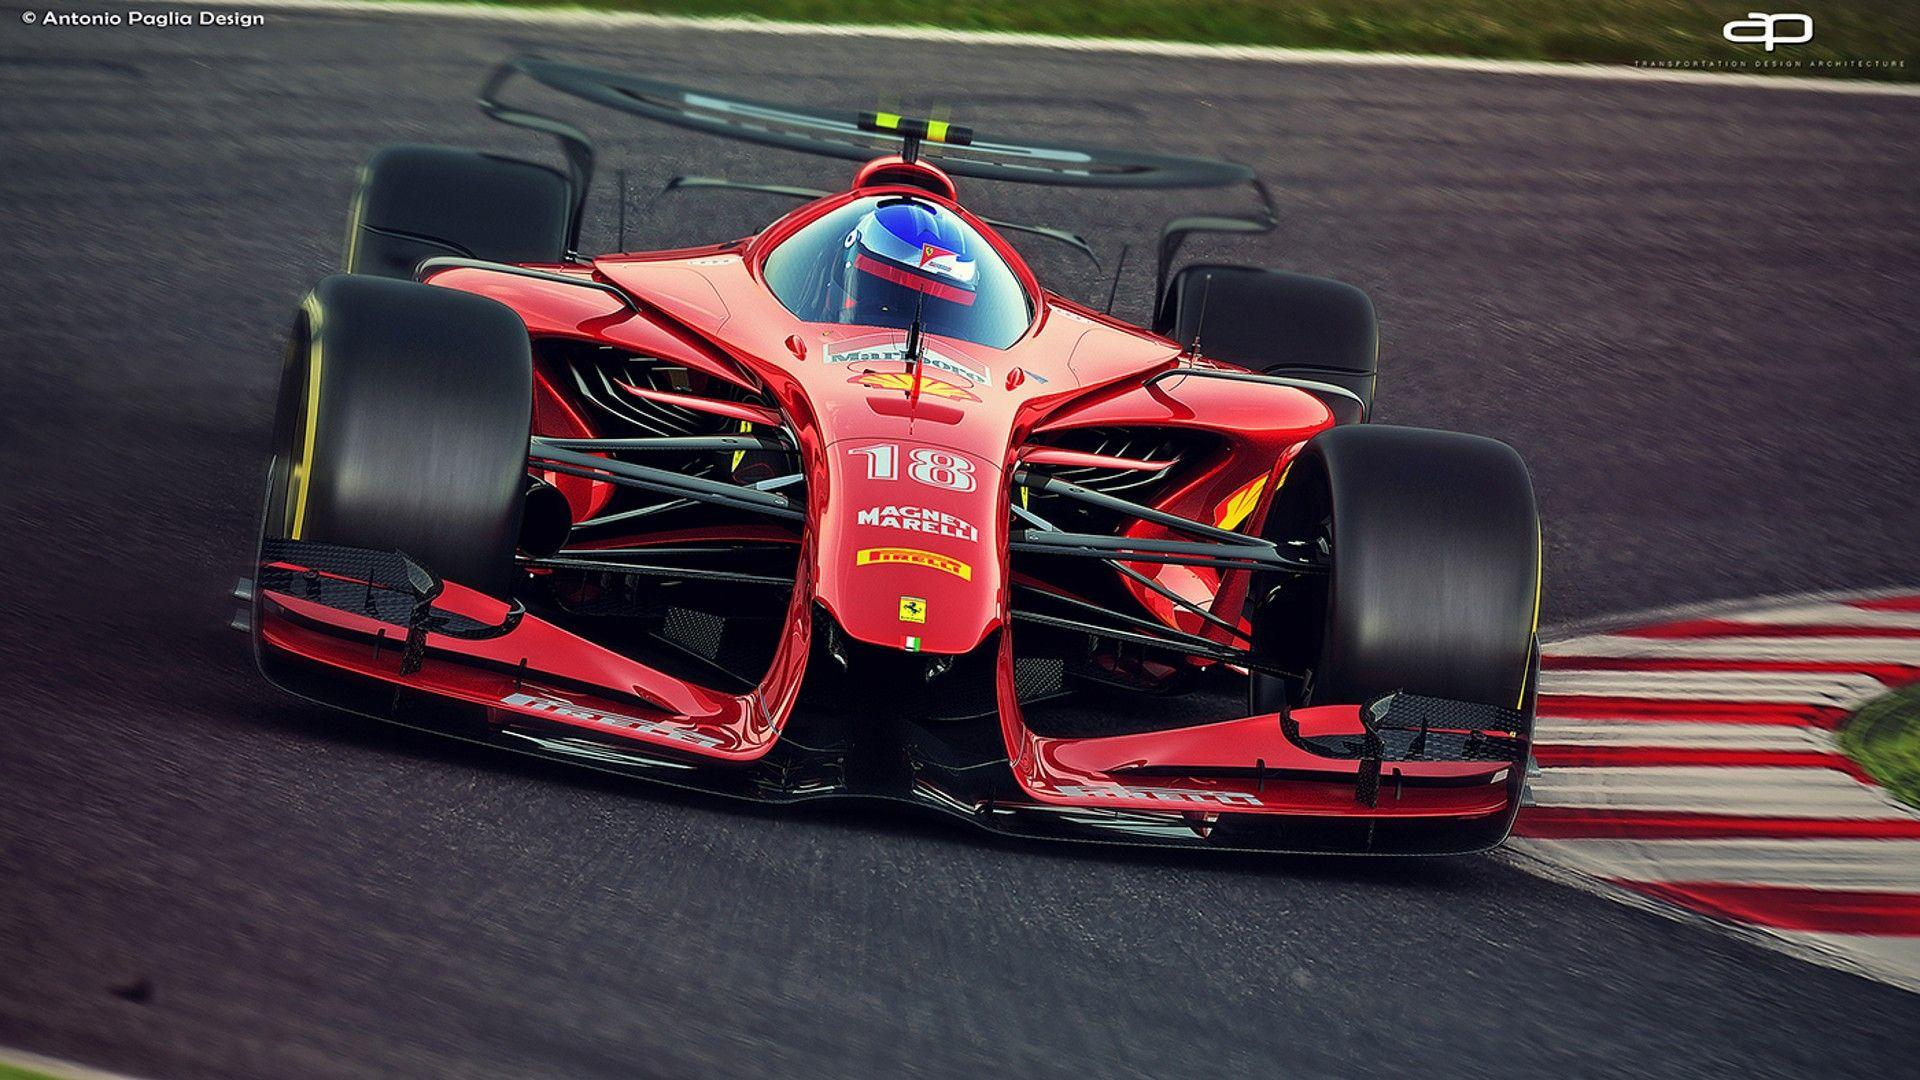 F1: We Can Only Hope F1 Cars Will Look This Good In 2025